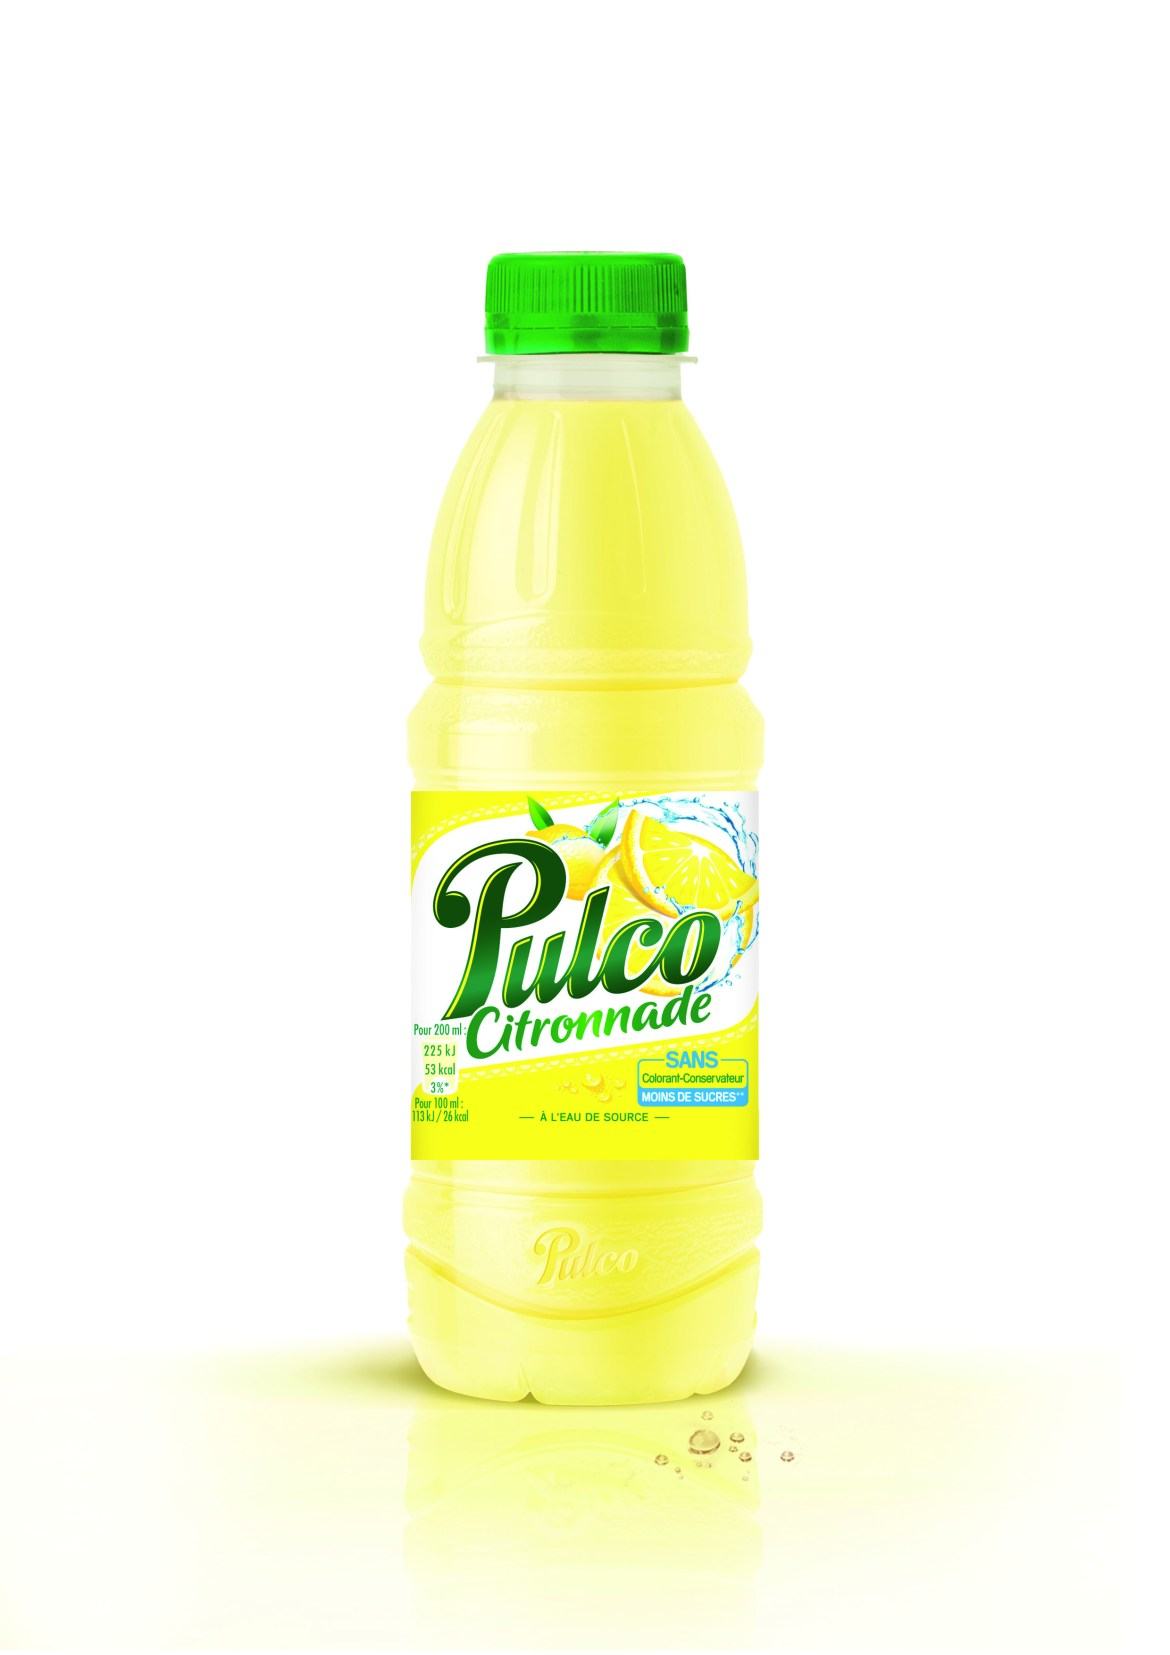 50cl Pulco Citronnade